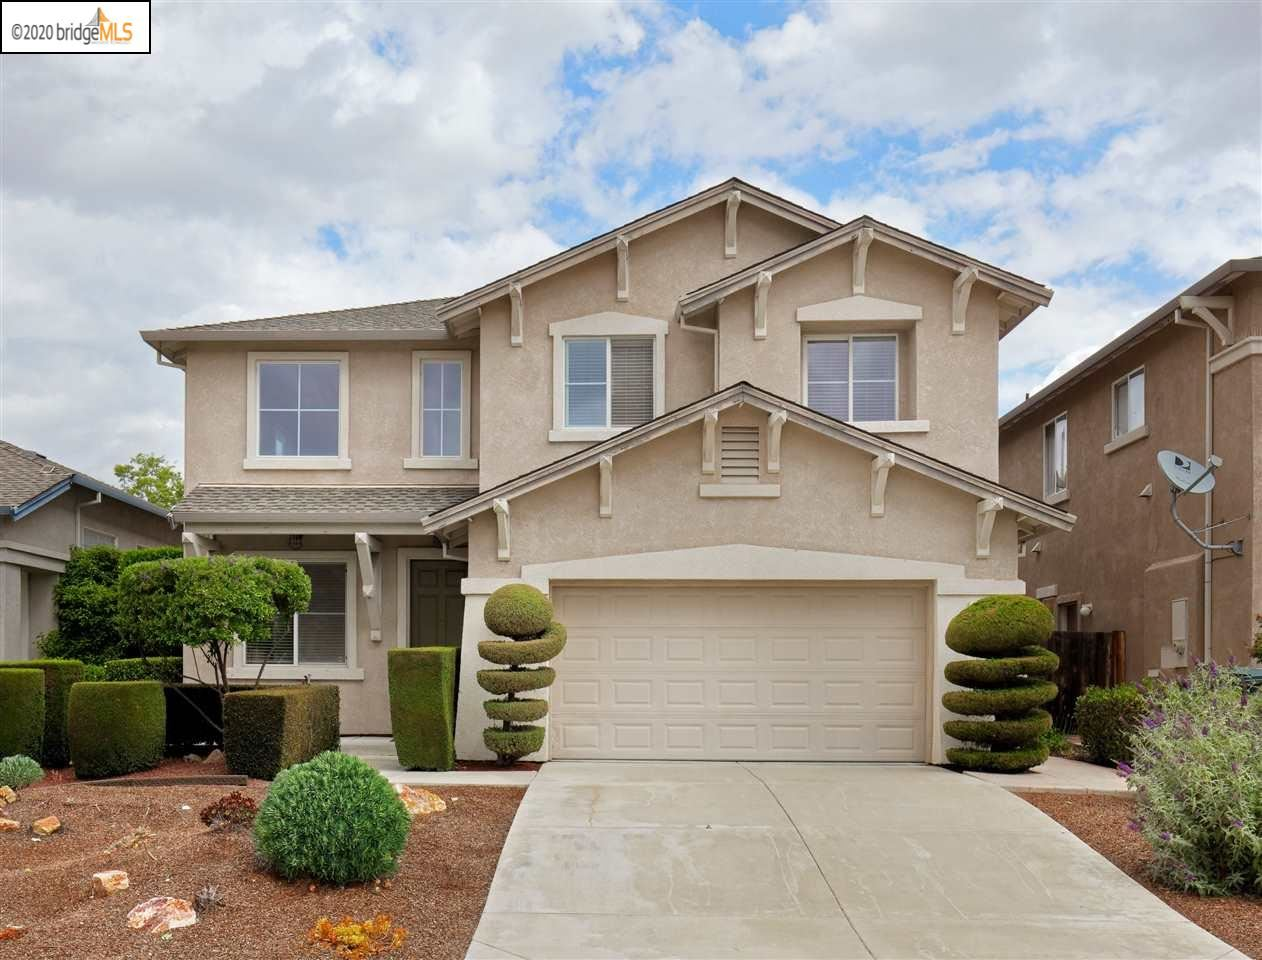 Photo of 4064 Montgomery Hill Dr, ANTIOCH, CA 94531 (MLS # 40905947)